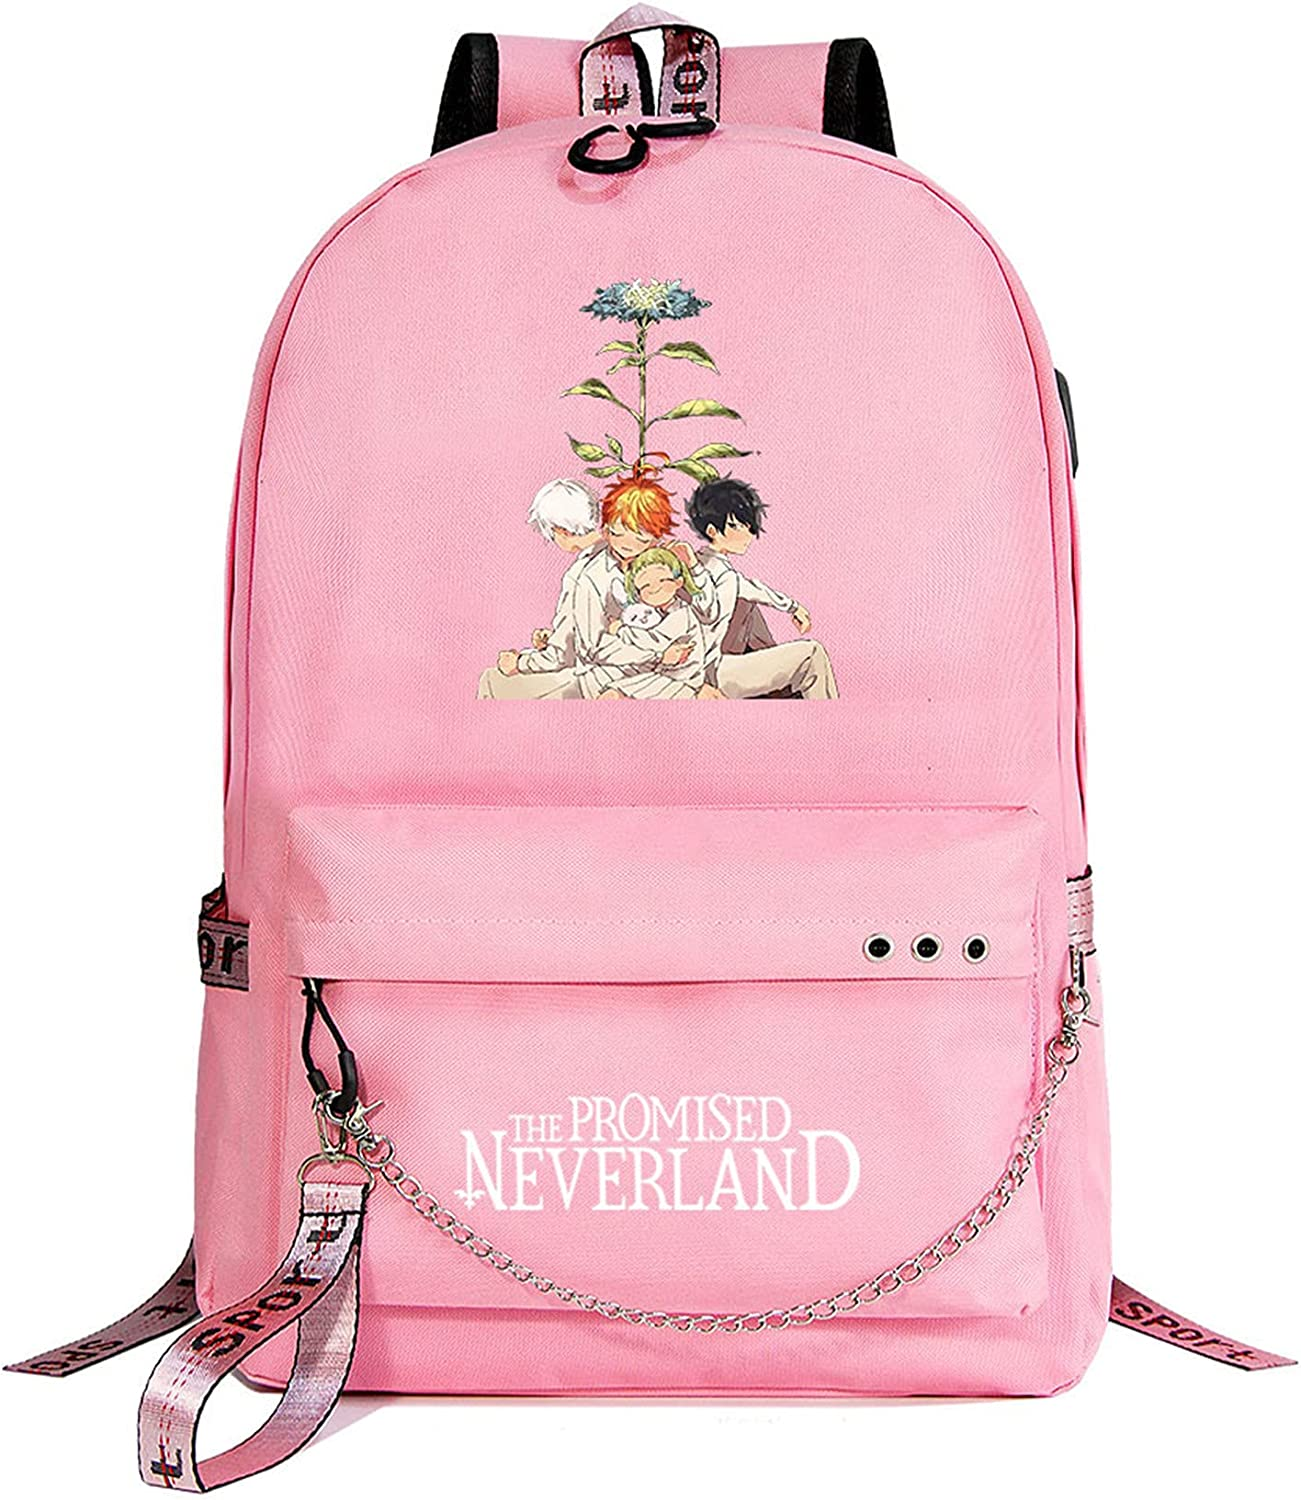 Col-92 Kids Students The Promised Tra Graphic Bag Beauty products Neverland Book Sale item